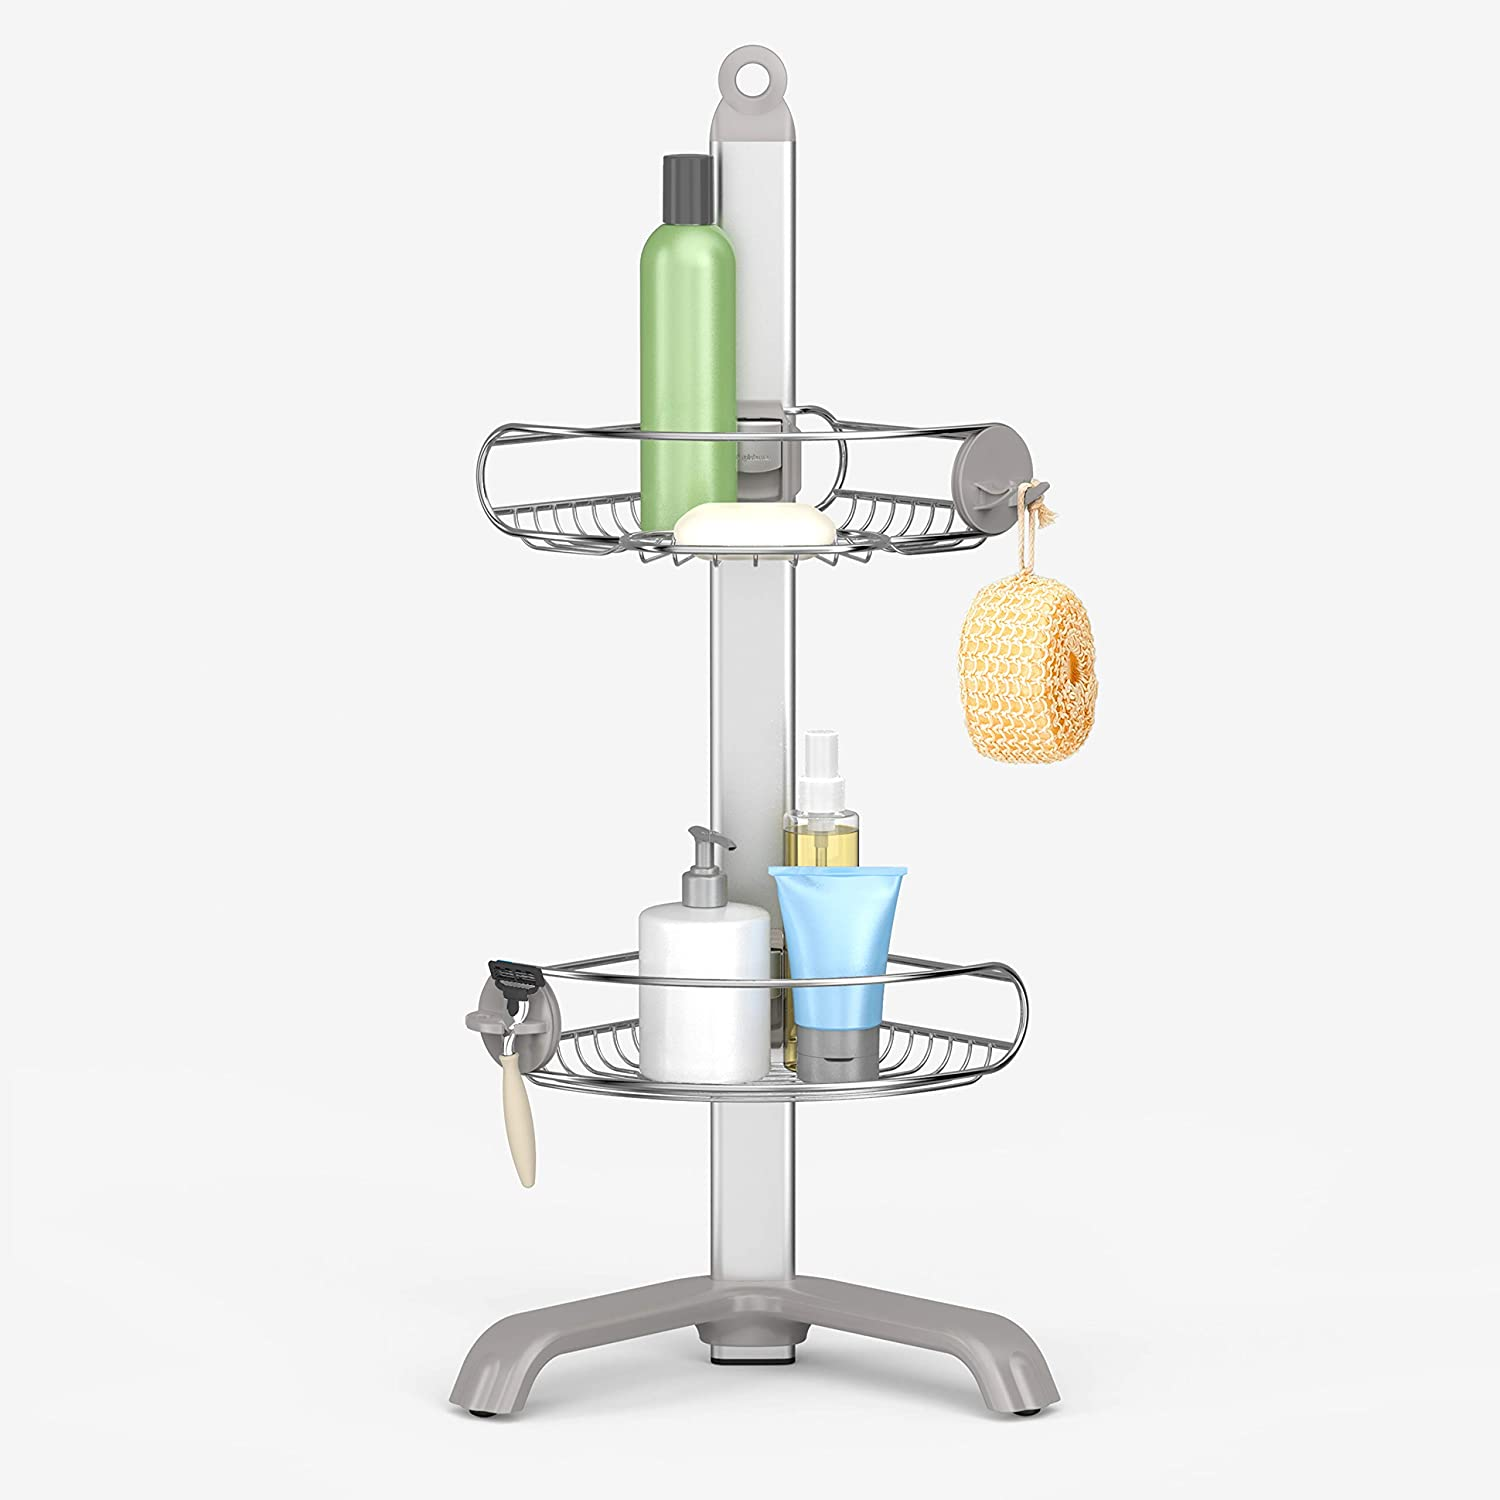 Amazon Com Simplehuman Corner Shower Caddy Stainless Steel And Anodized Aluminum Home Kitchen